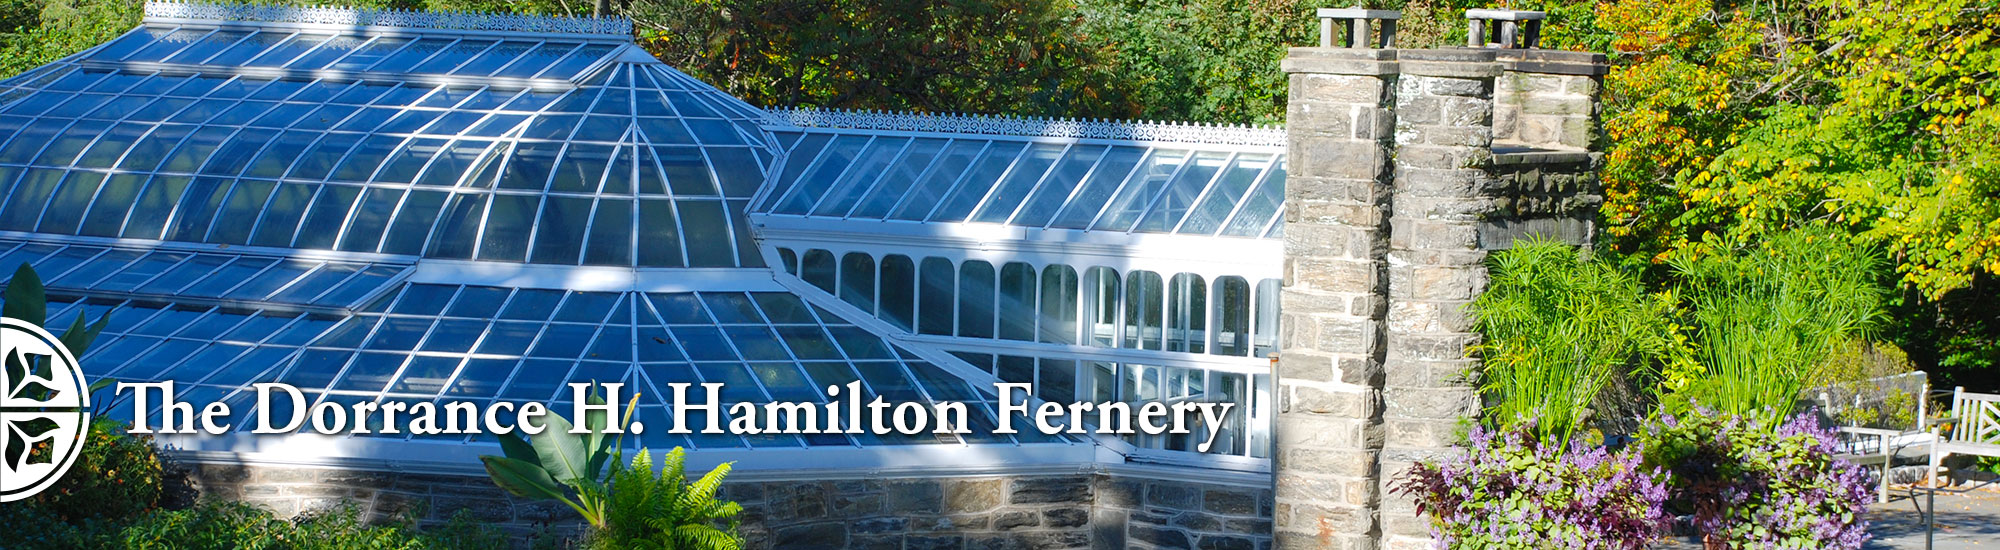 The Dorrance H. Hamilton Fernery